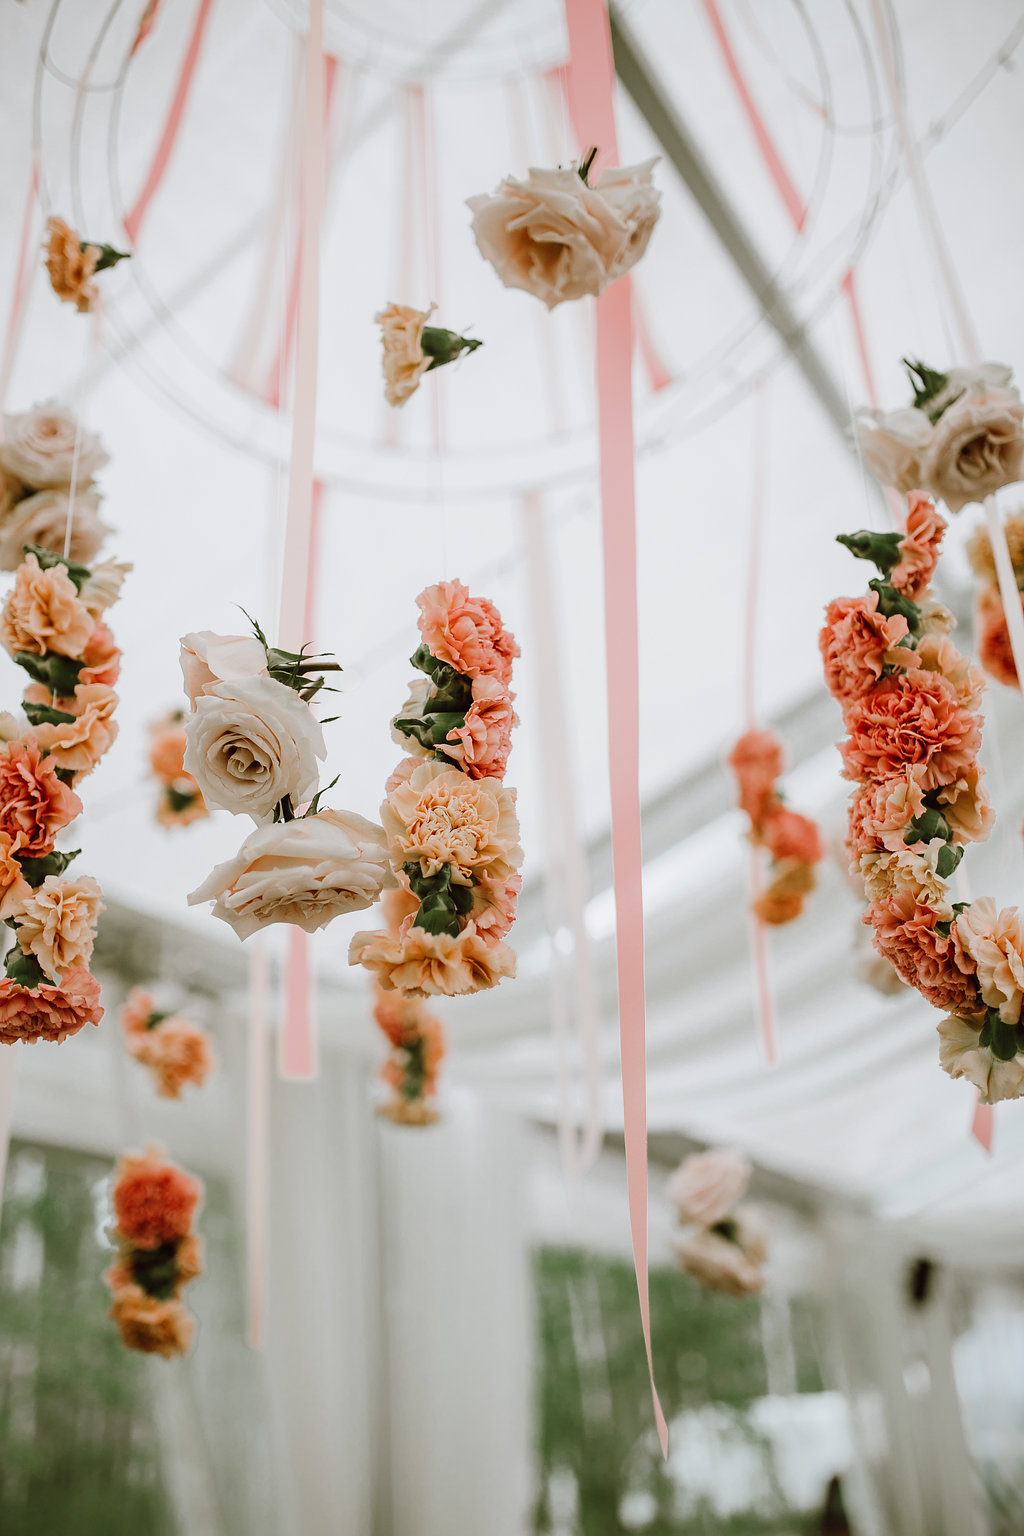 Hanging Floral Chandelier - Cielo's Garden Wedding